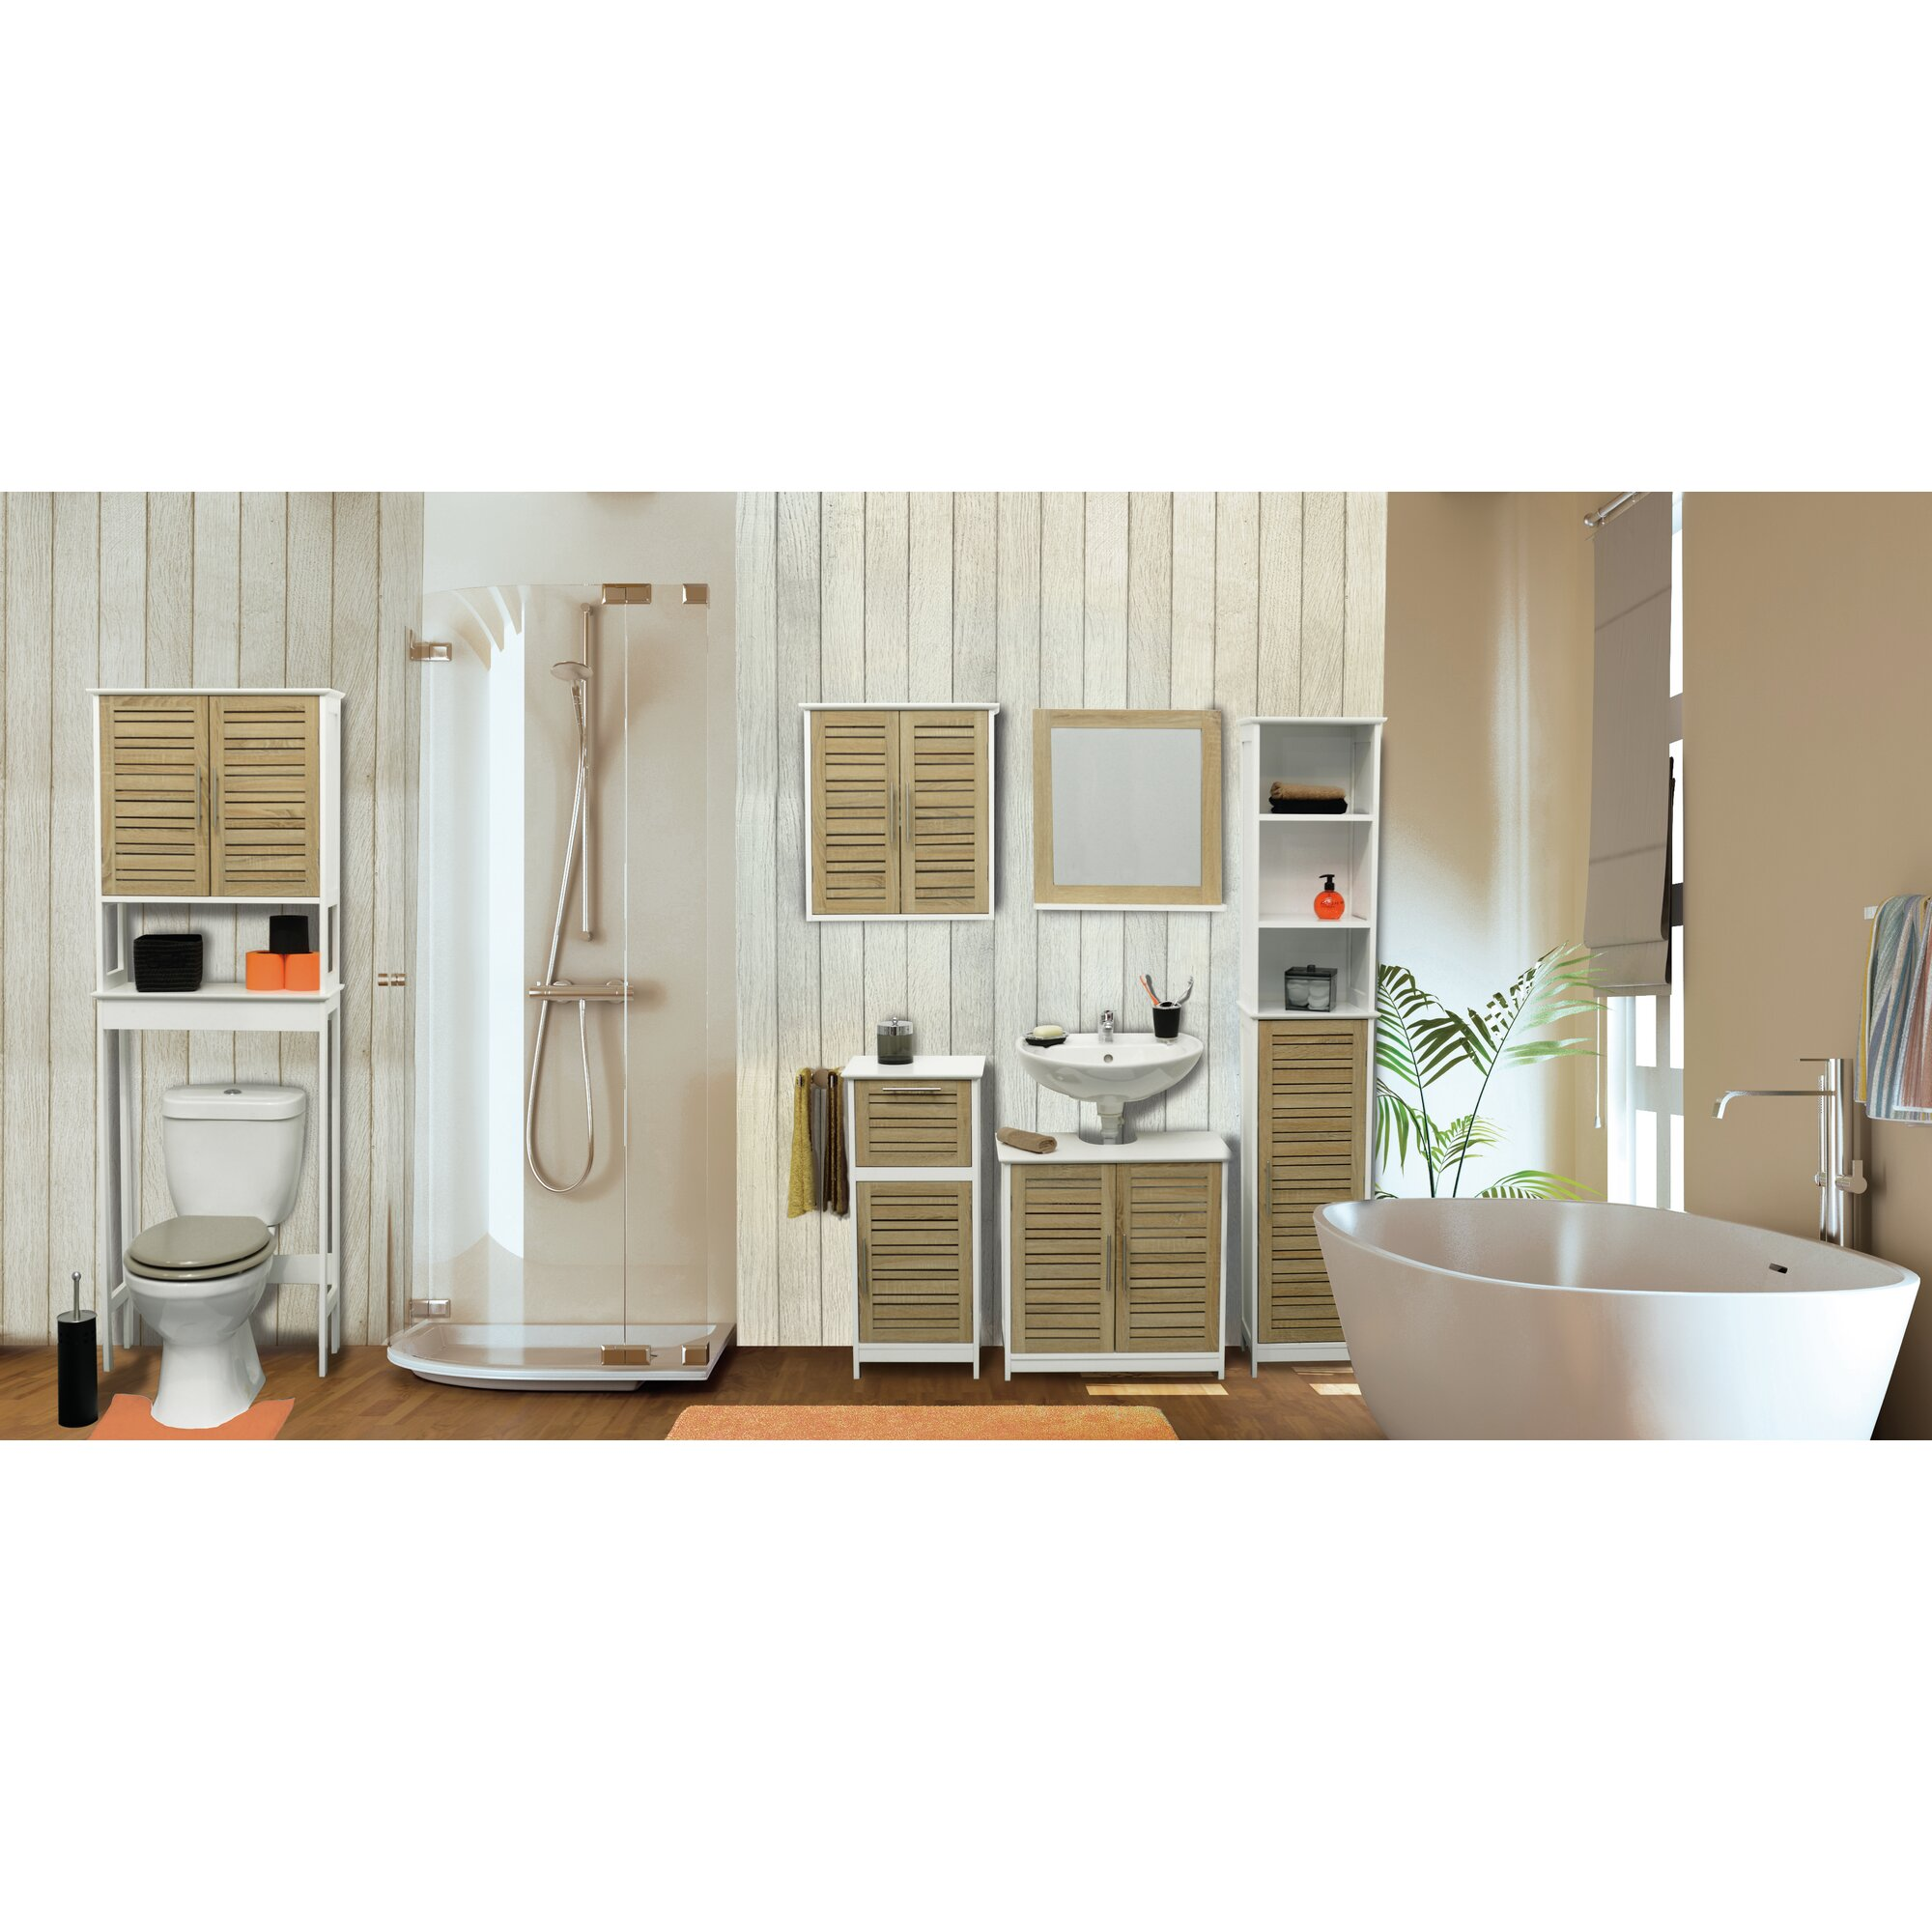 """Wayfair Free Standing Kitchen Cabinets: Evideco Stockholm 14.4"""" W X 32.7"""" H Cabinet & Reviews"""